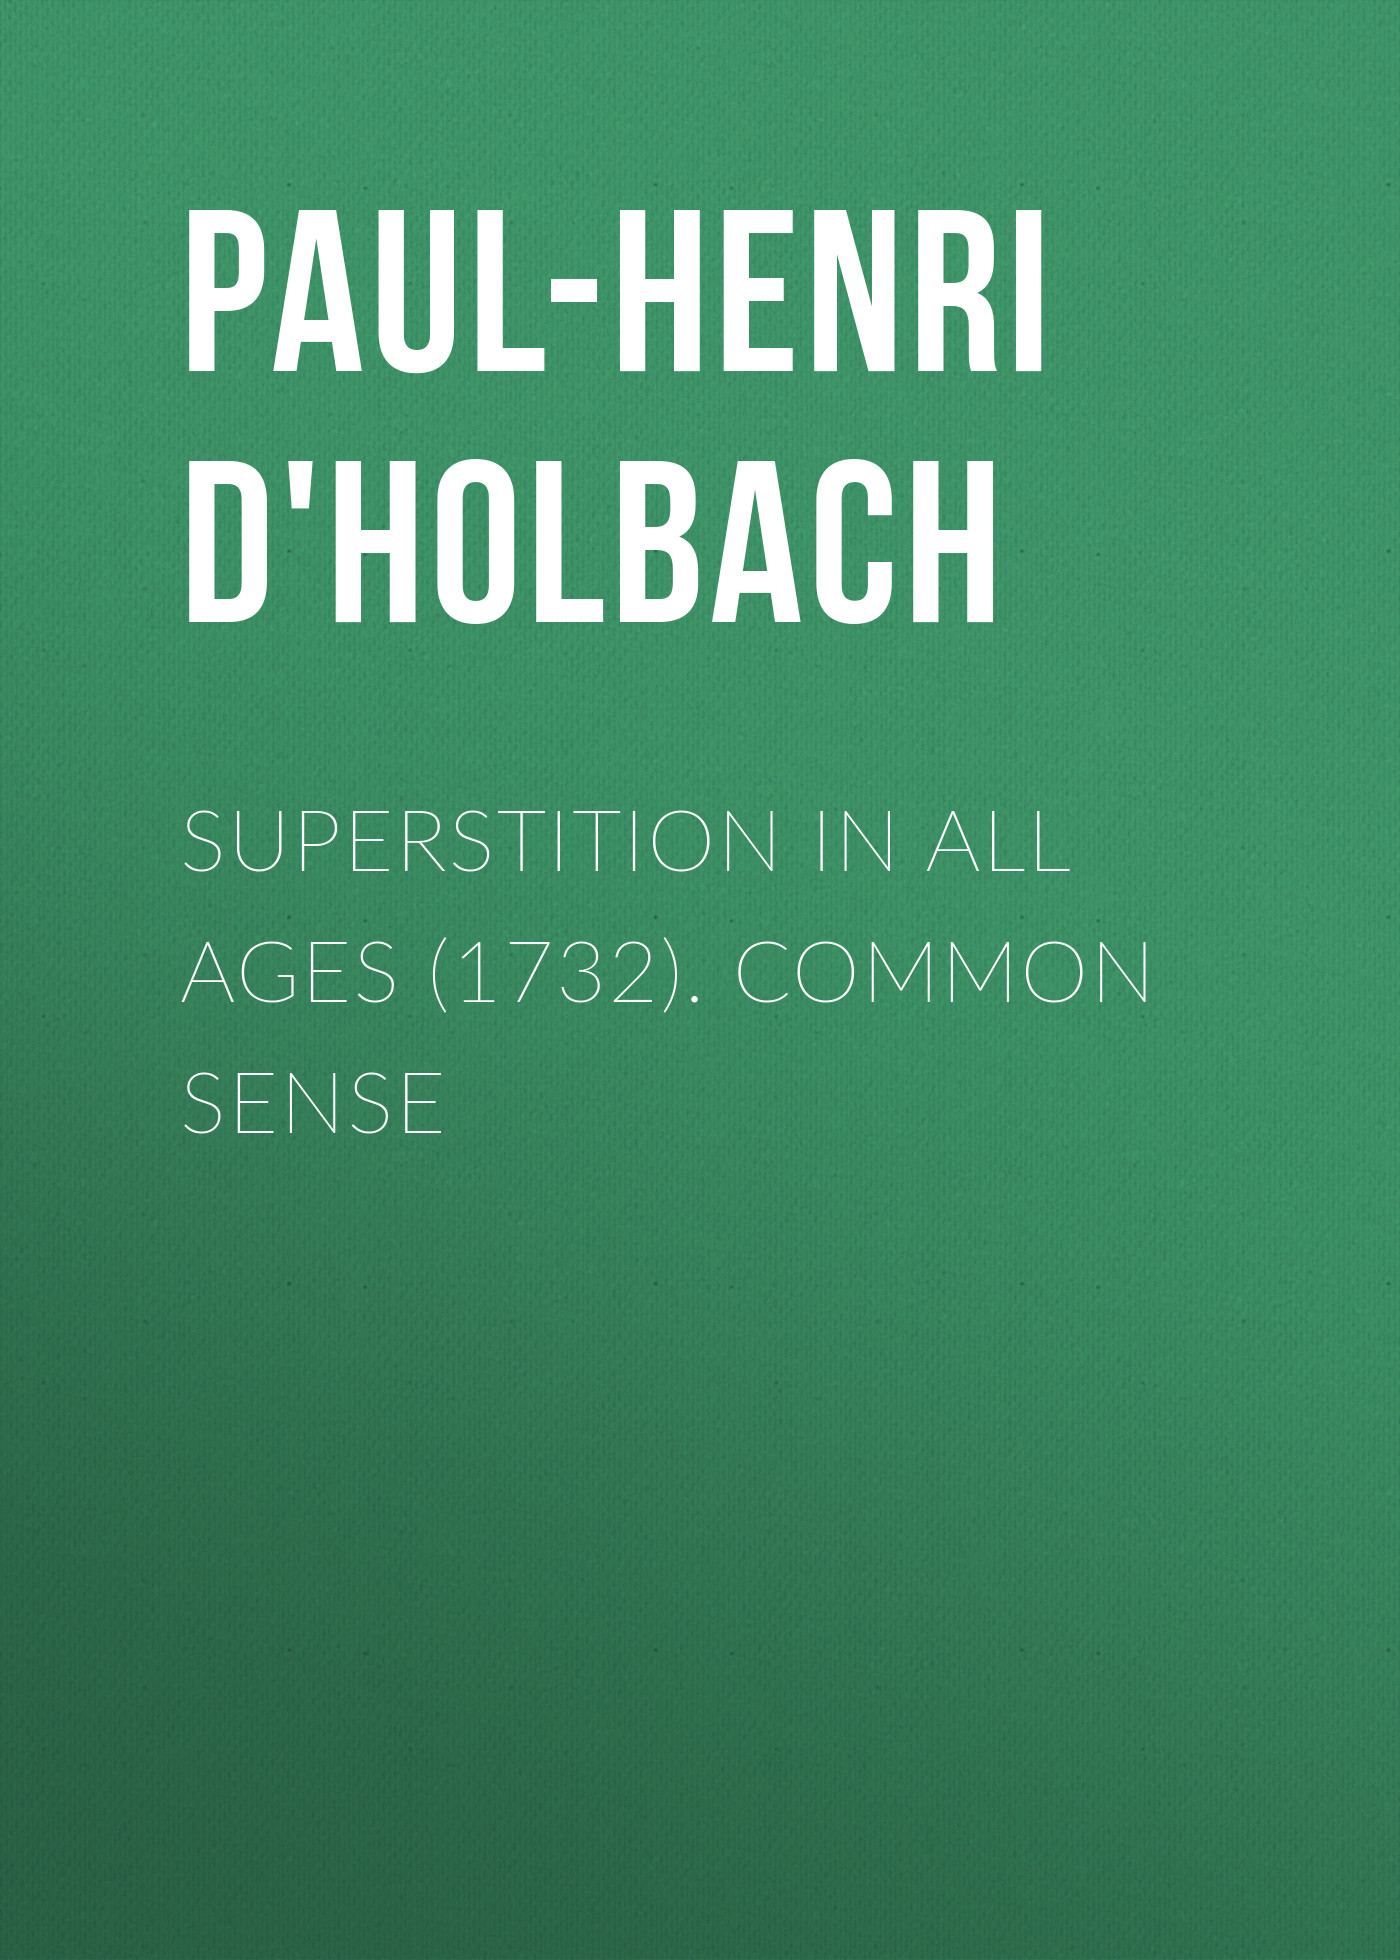 Paul-Henri d'Holbach Superstition In All Ages (1732). Common Sense